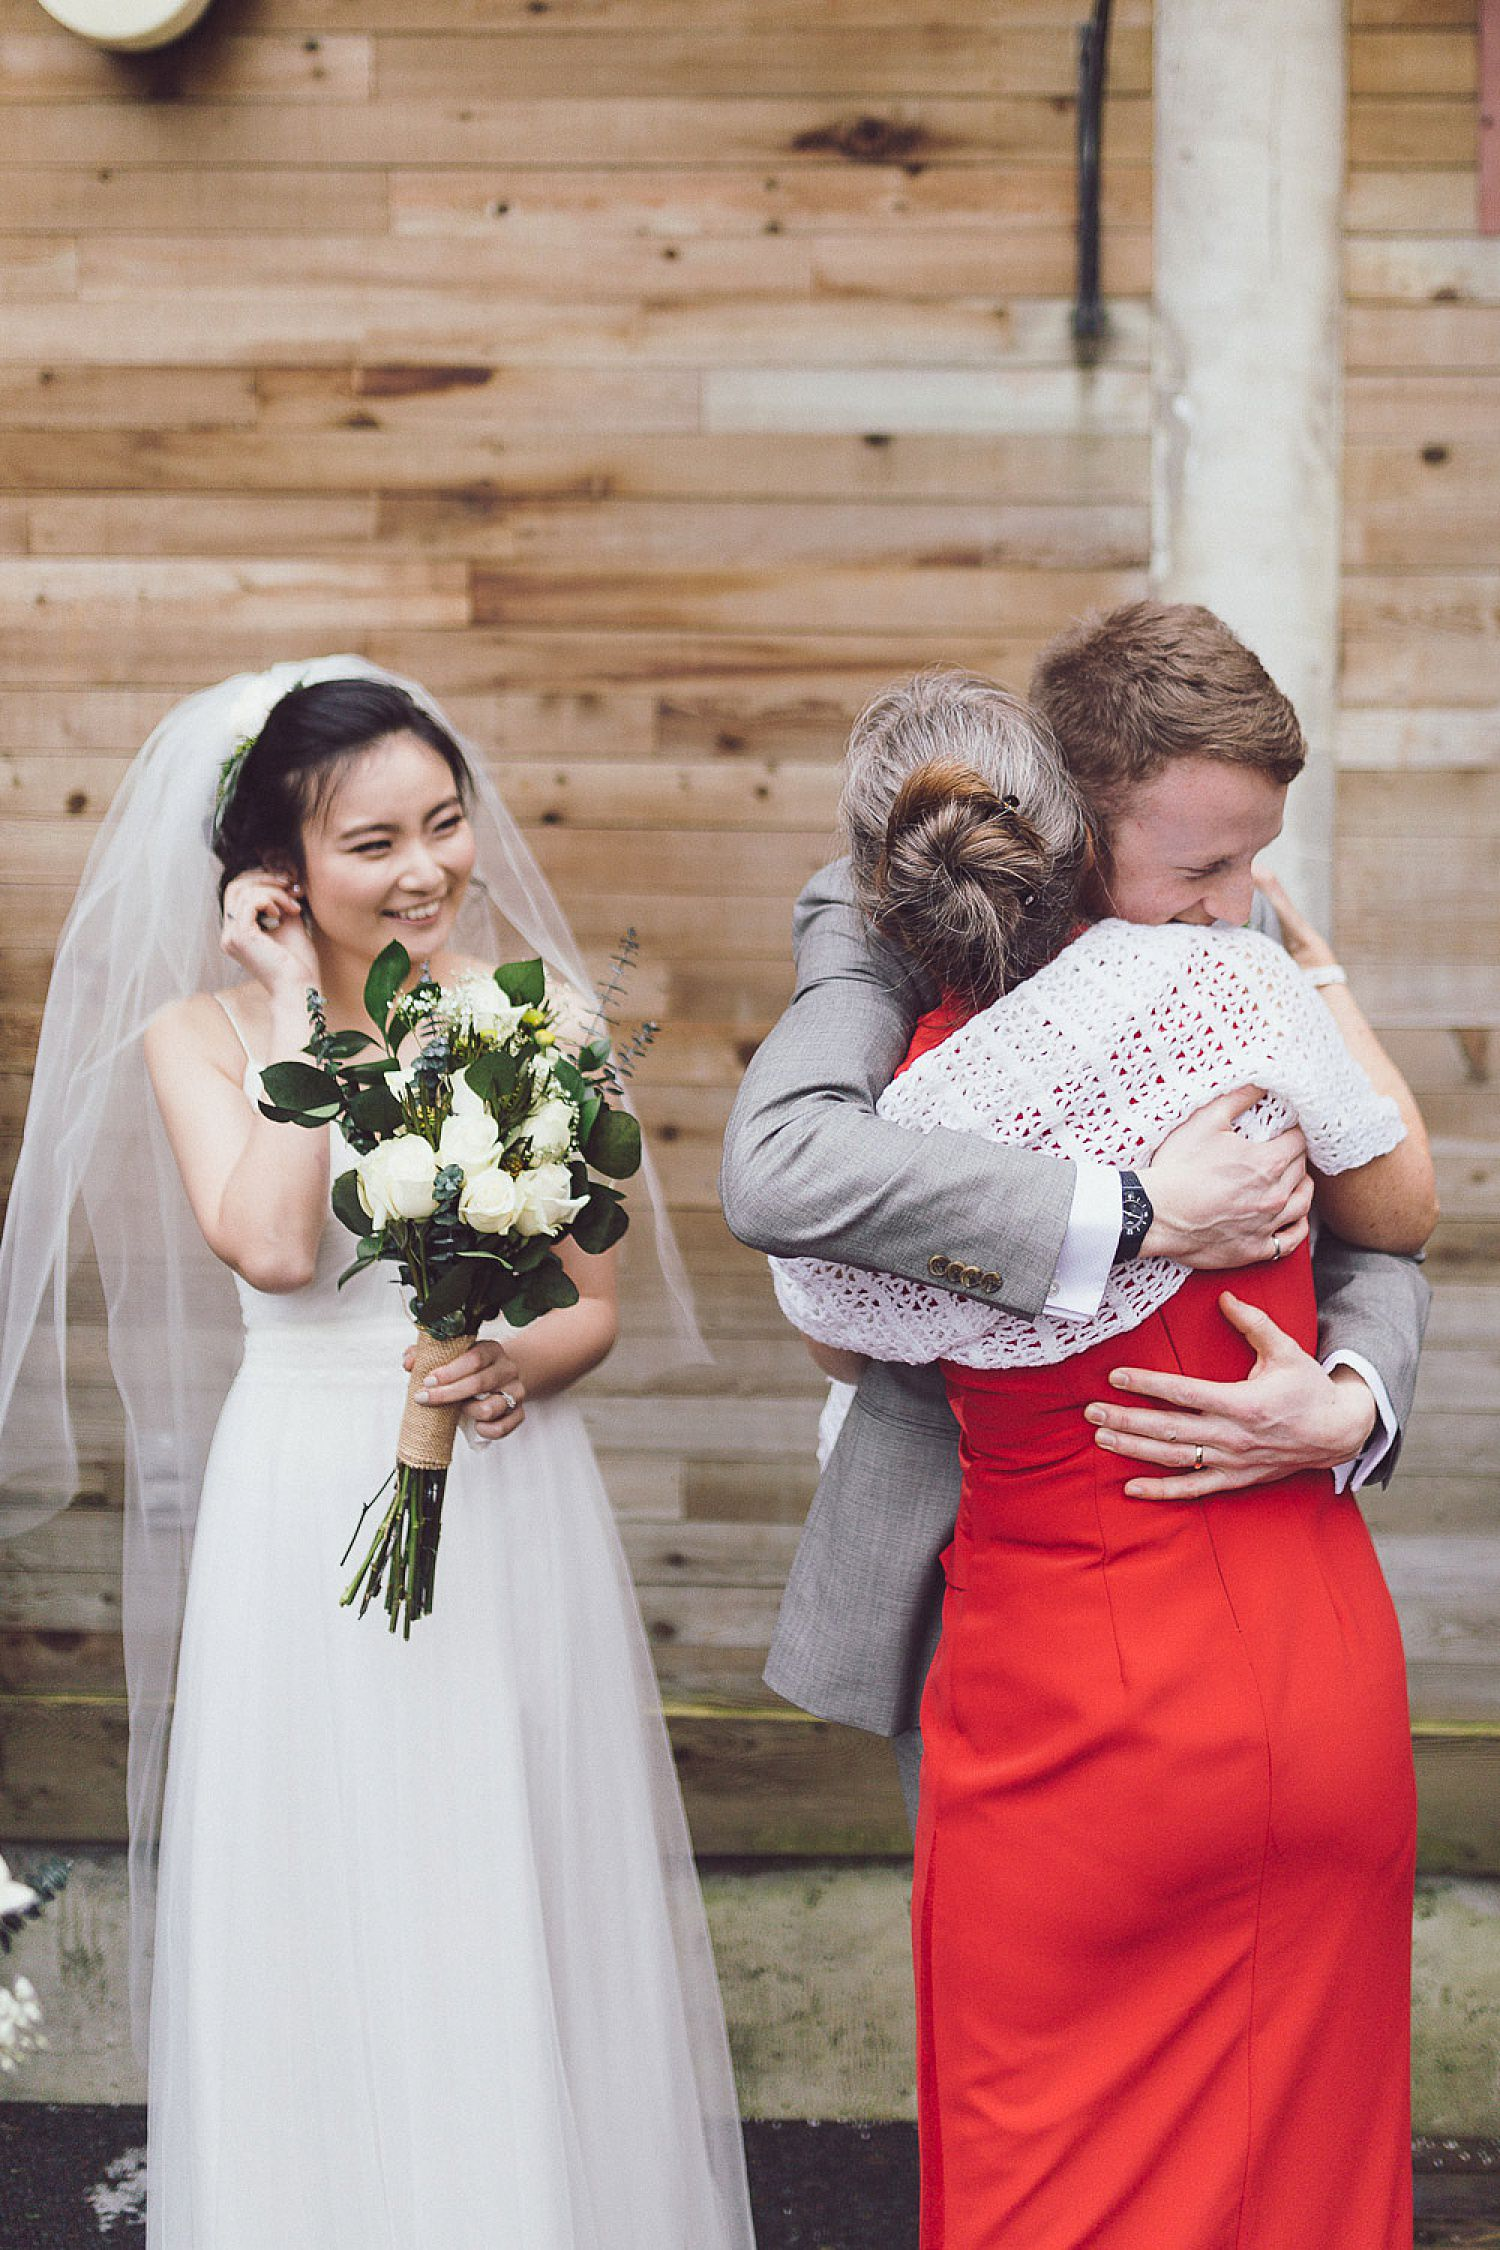 Mom gives bride and groom a hug